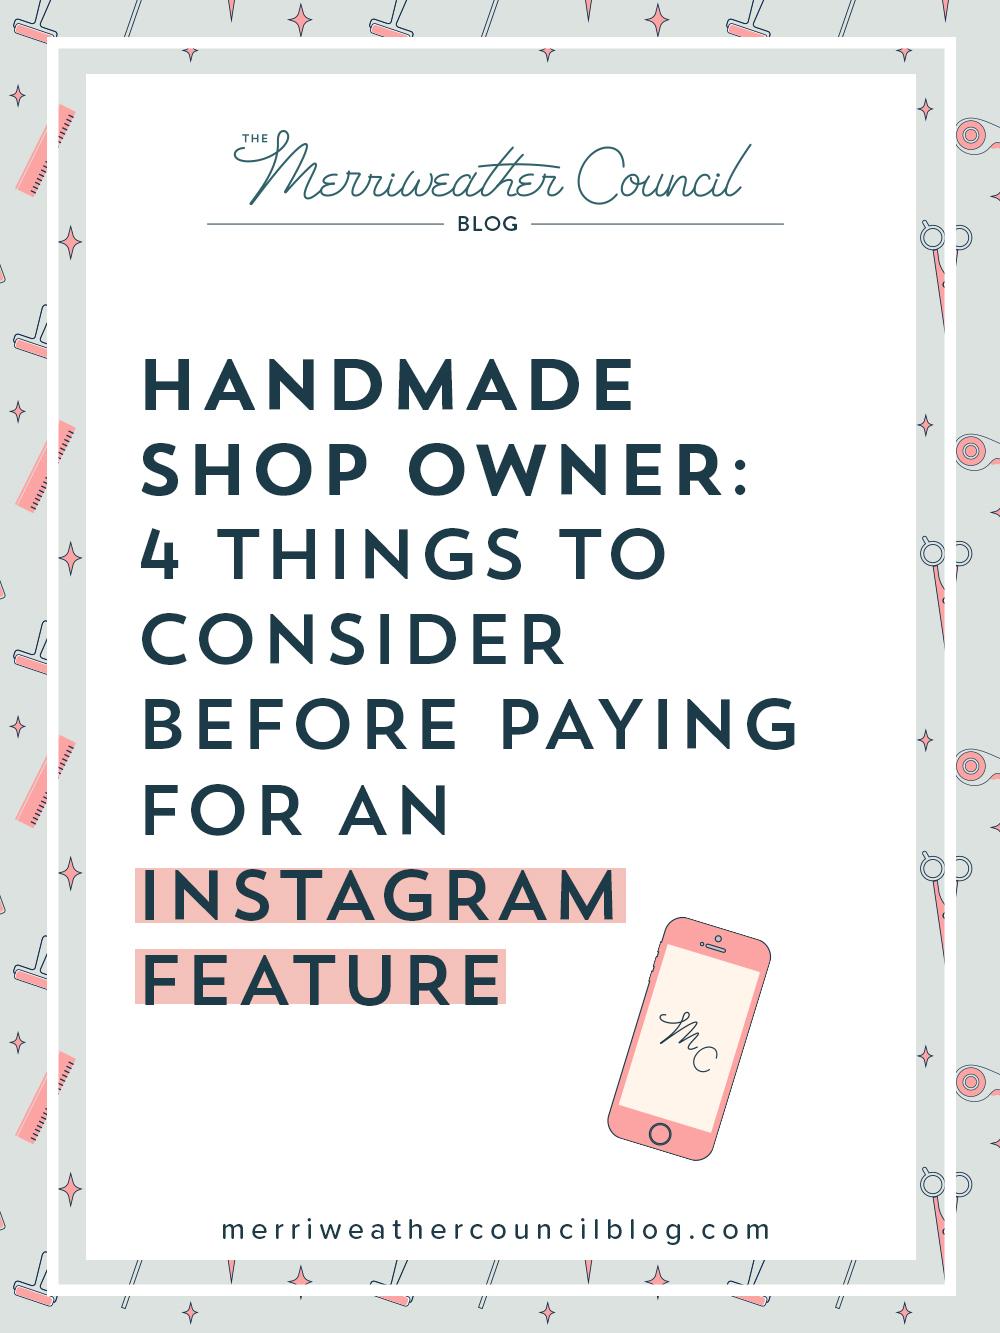 should you pay for an instagram post on a handmade feature account? | the merriweather council blog